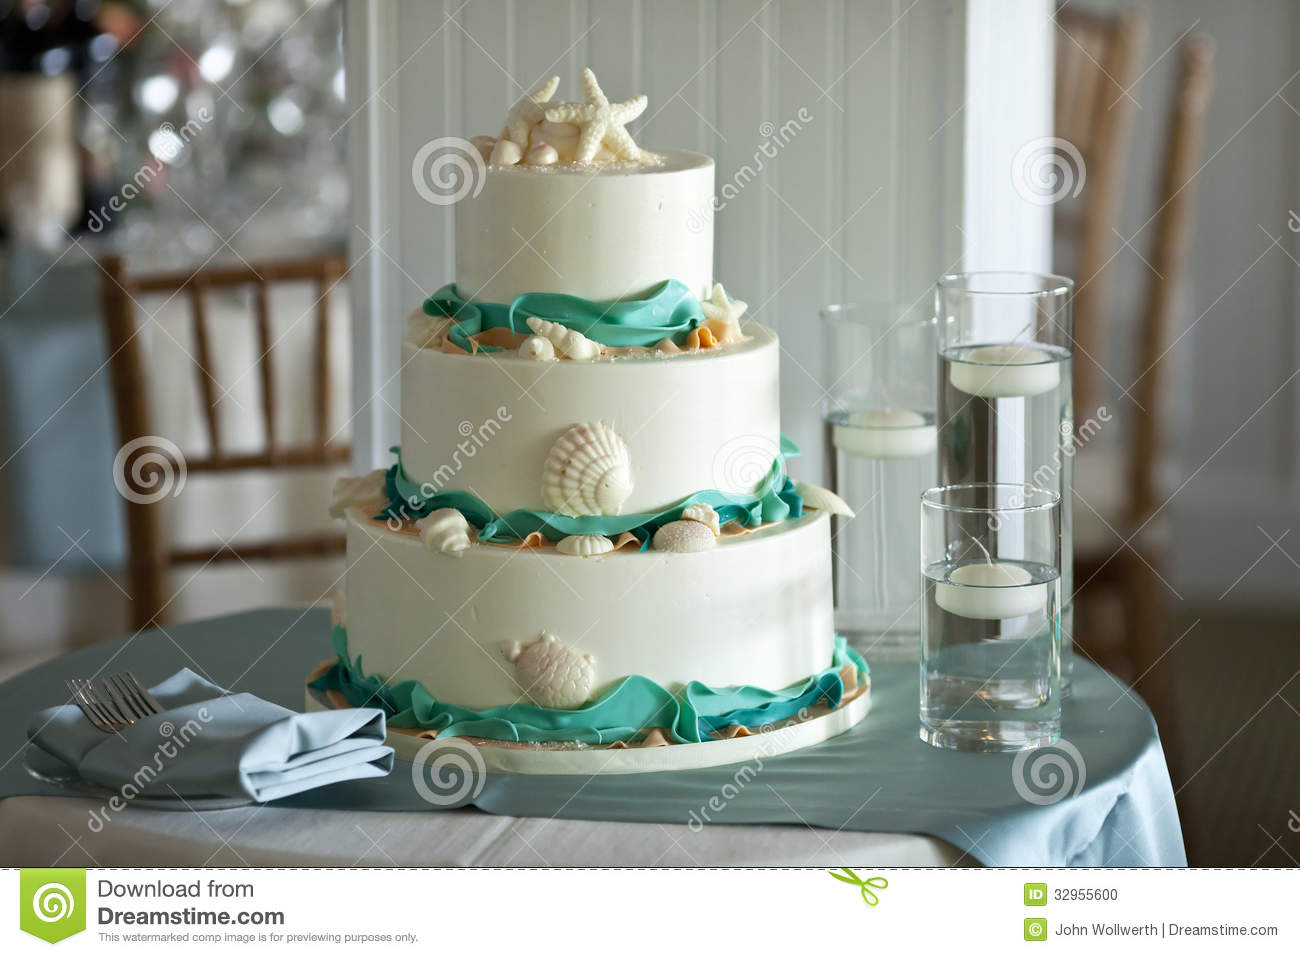 Three Tiered Wedding Cake Stock Photo - Image: 32955600